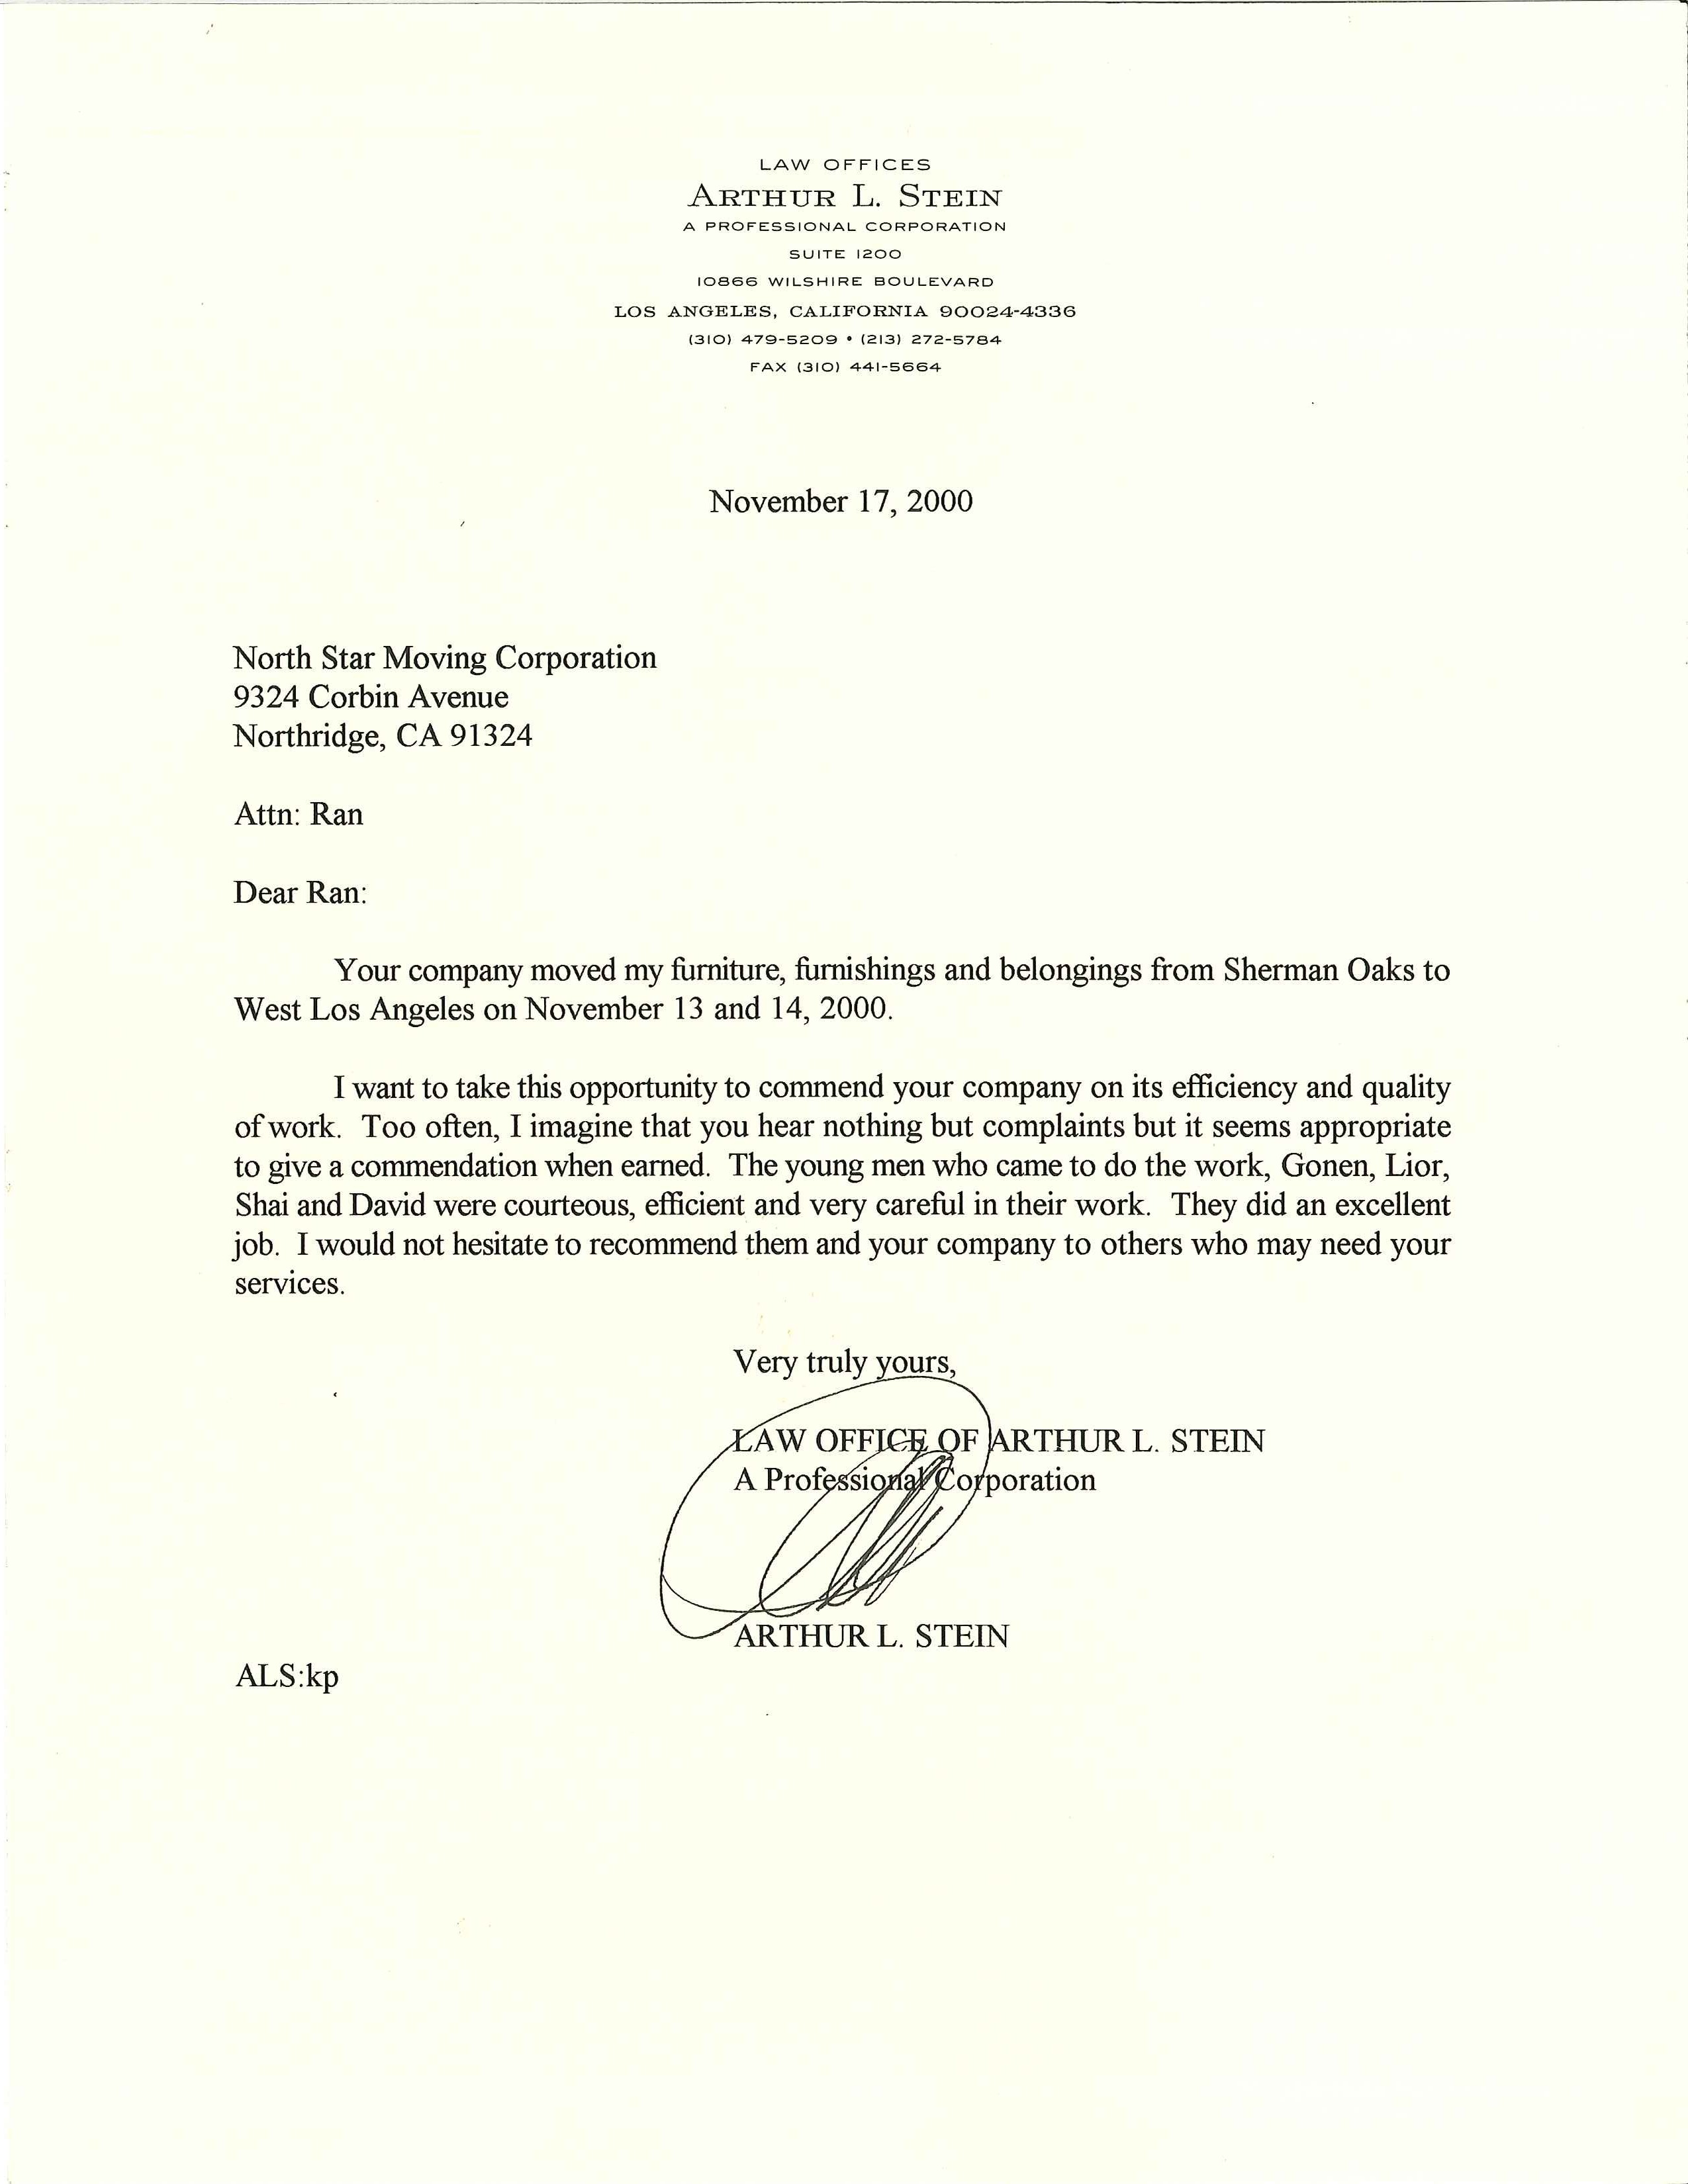 Recommendation Letter from Law Office of Arthur L. Stein